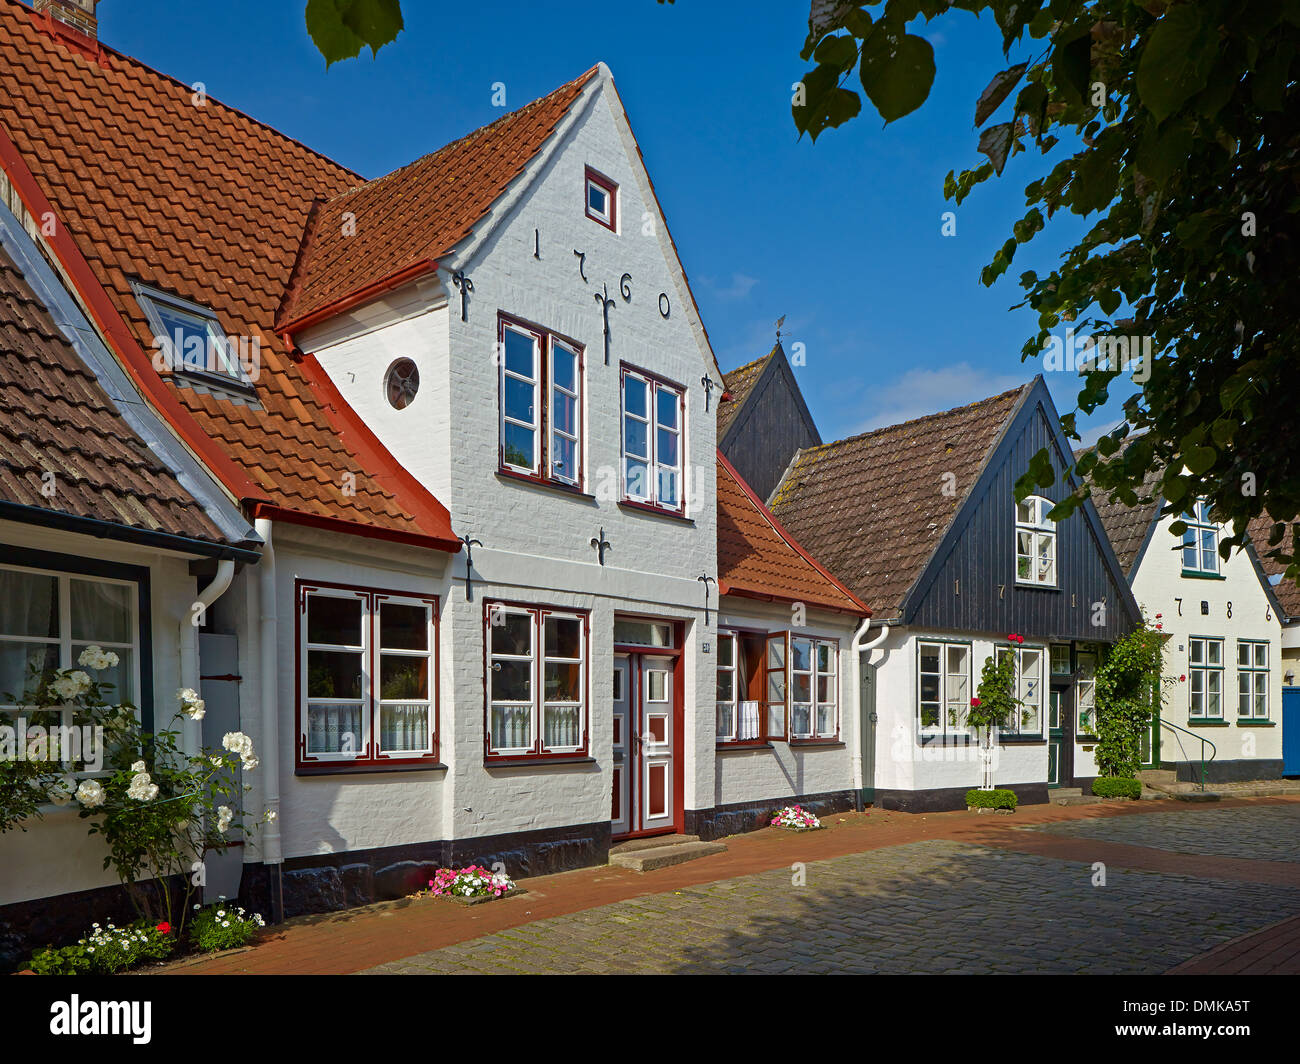 District Of Schleswig Flensburg Stock Photos & District Of ...